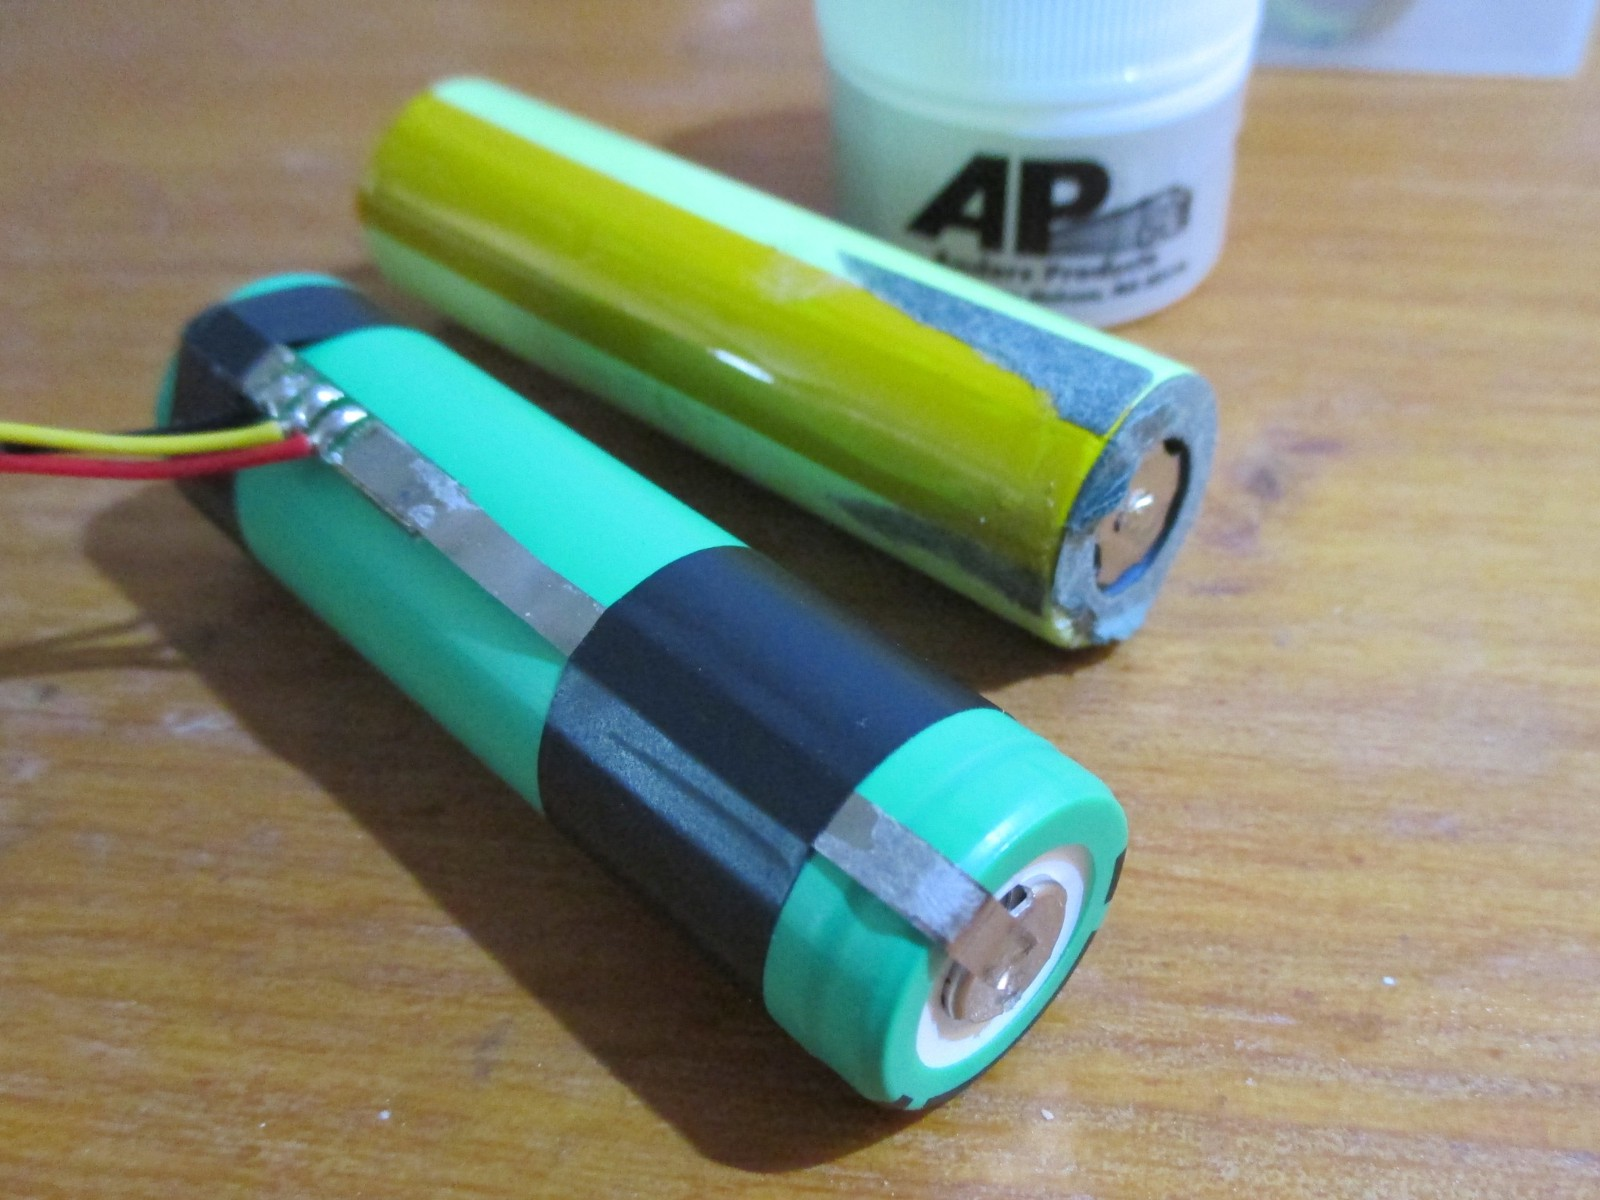 Fly 6 Repair Battery Replacement Bikebot Medium Rechargeable Lithiumion Batteries With Protection Circuit Board Pcb Secure The Onto A New 18650 Li Ion Double Check Its Right Way Around Getting This Wrong Would Be Bad Really